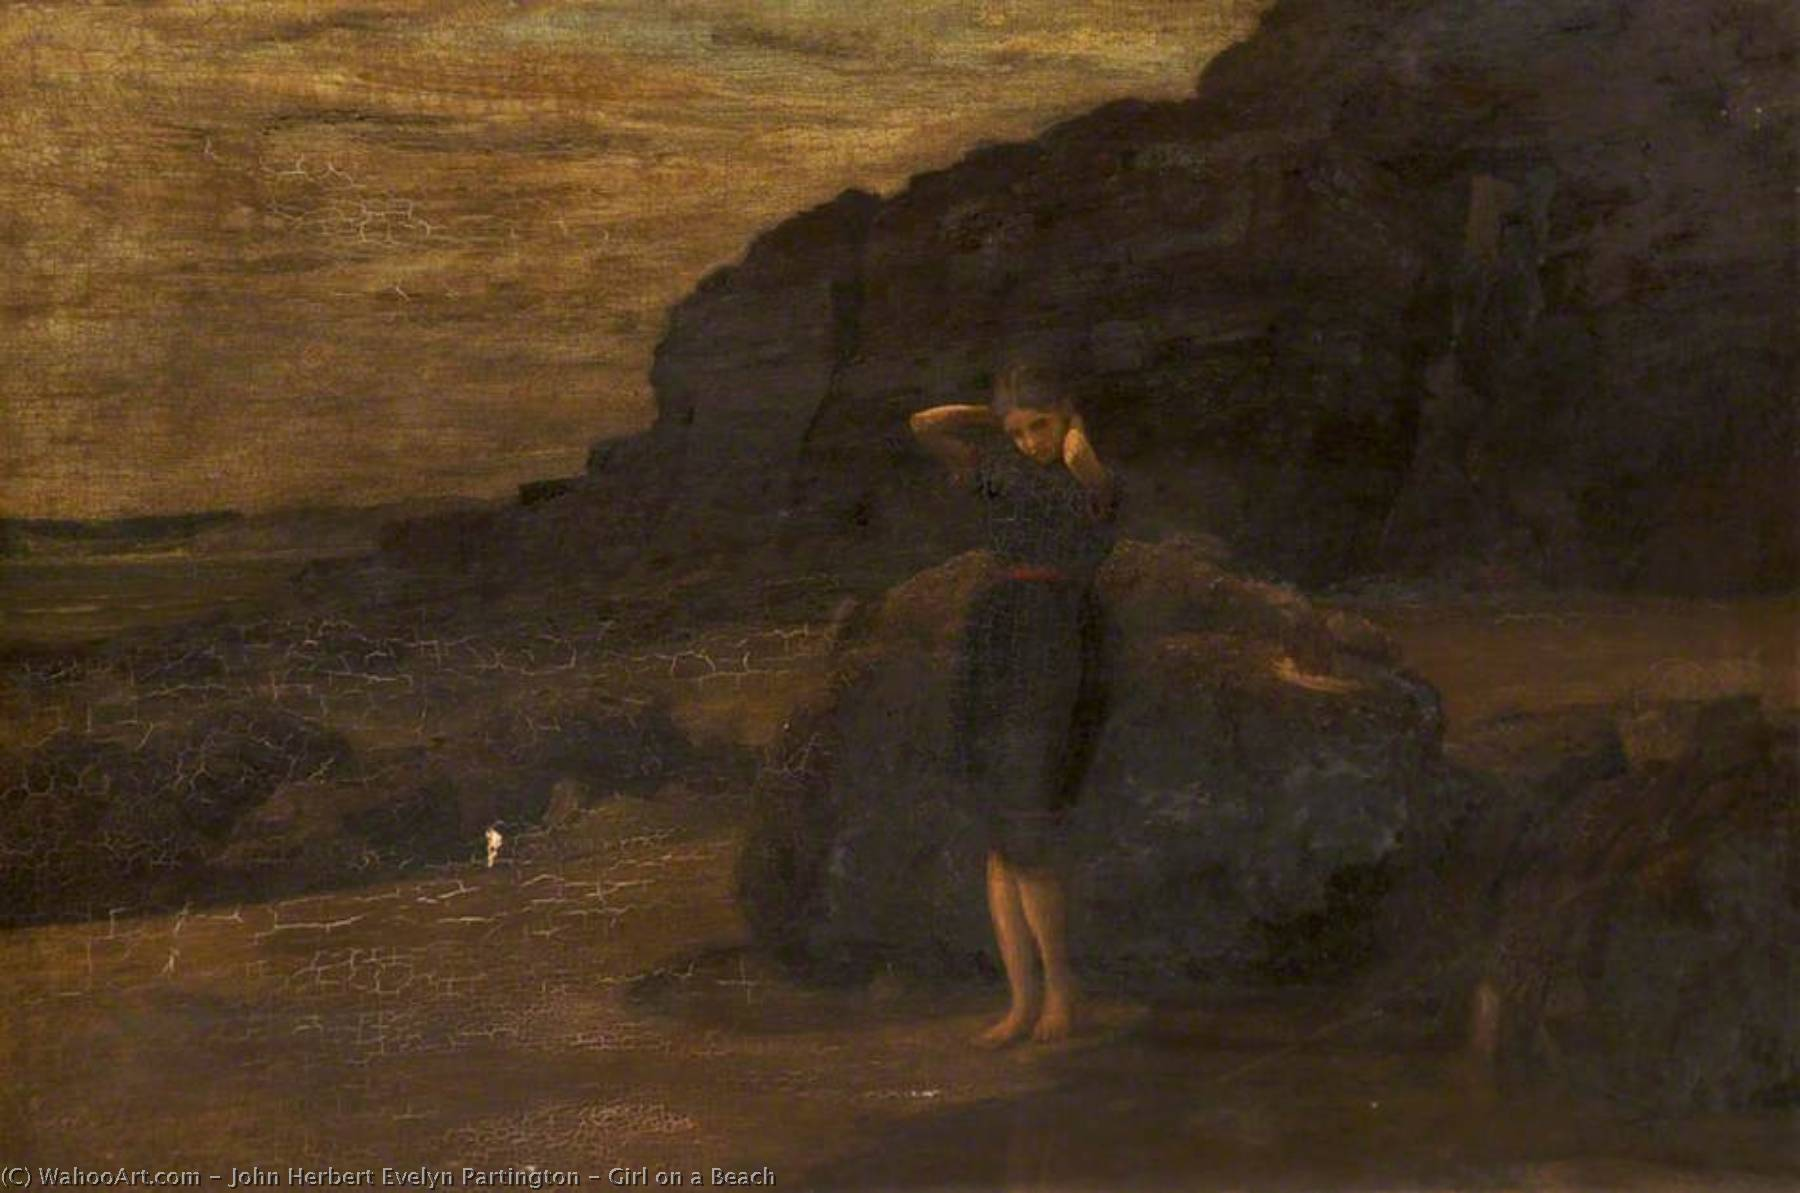 Girl on a Beach, Oil On Canvas by John Herbert Evelyn Partington